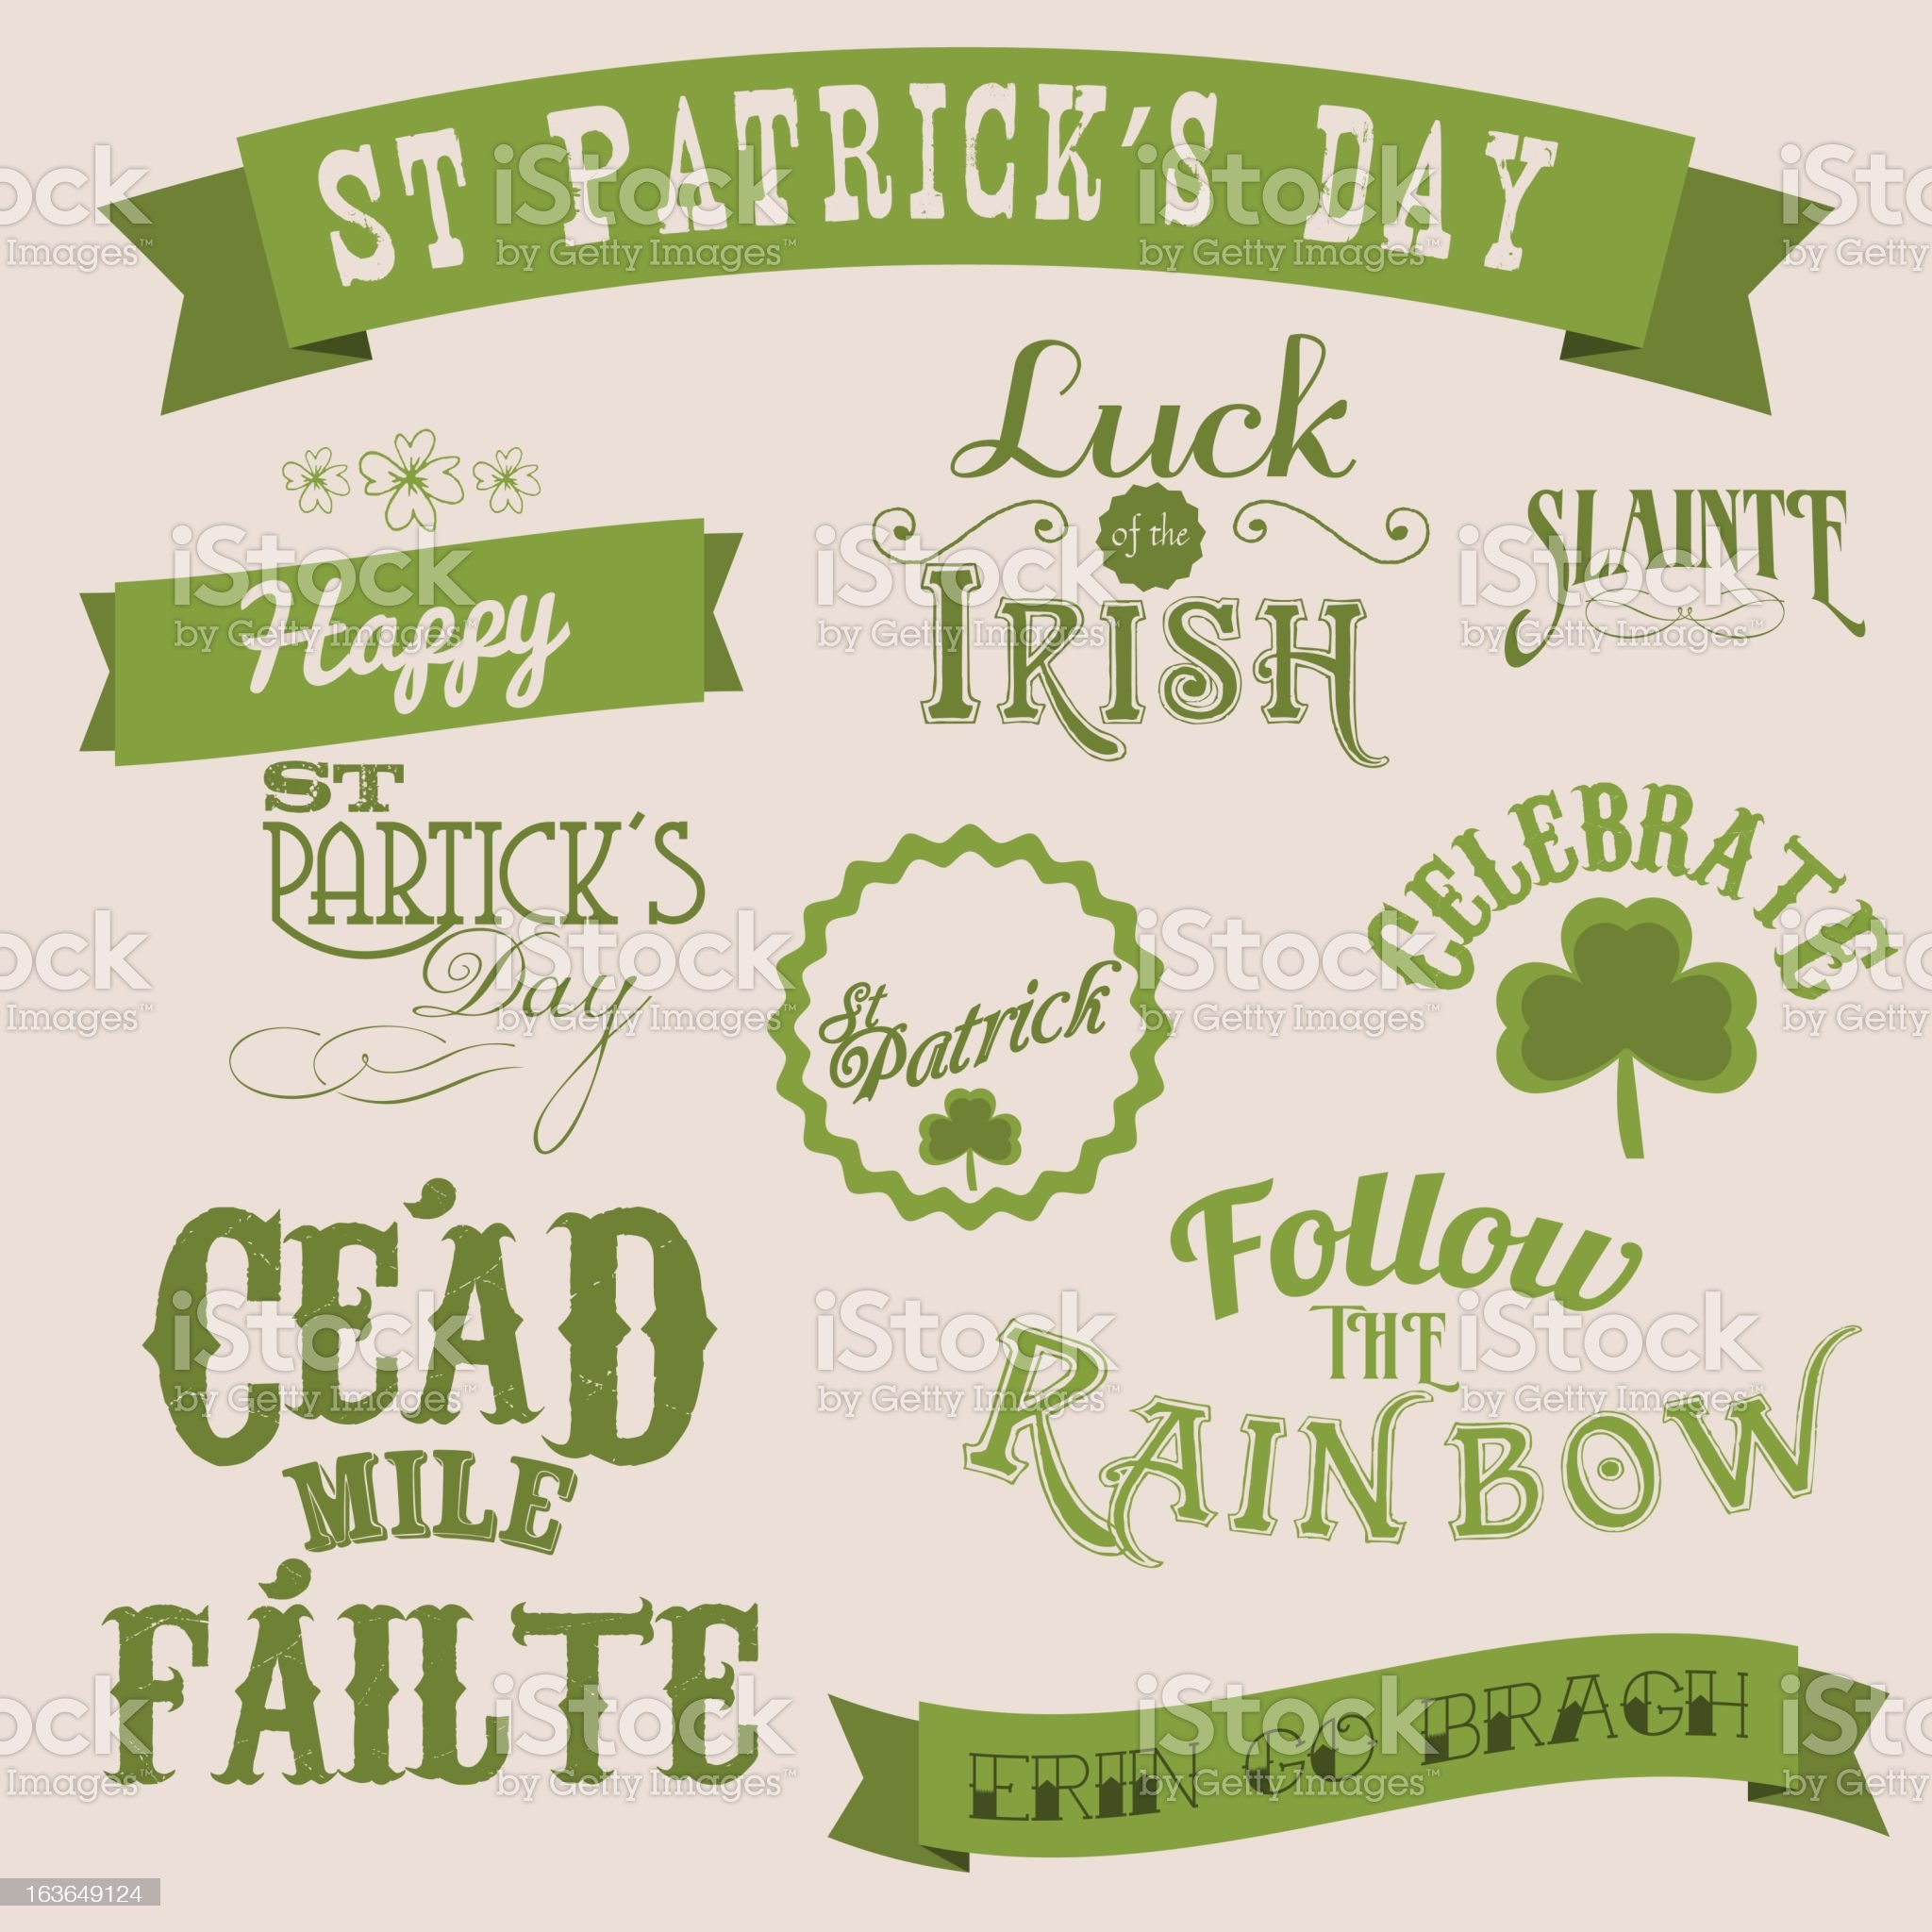 St Patrick's day labels royalty-free stock vector art